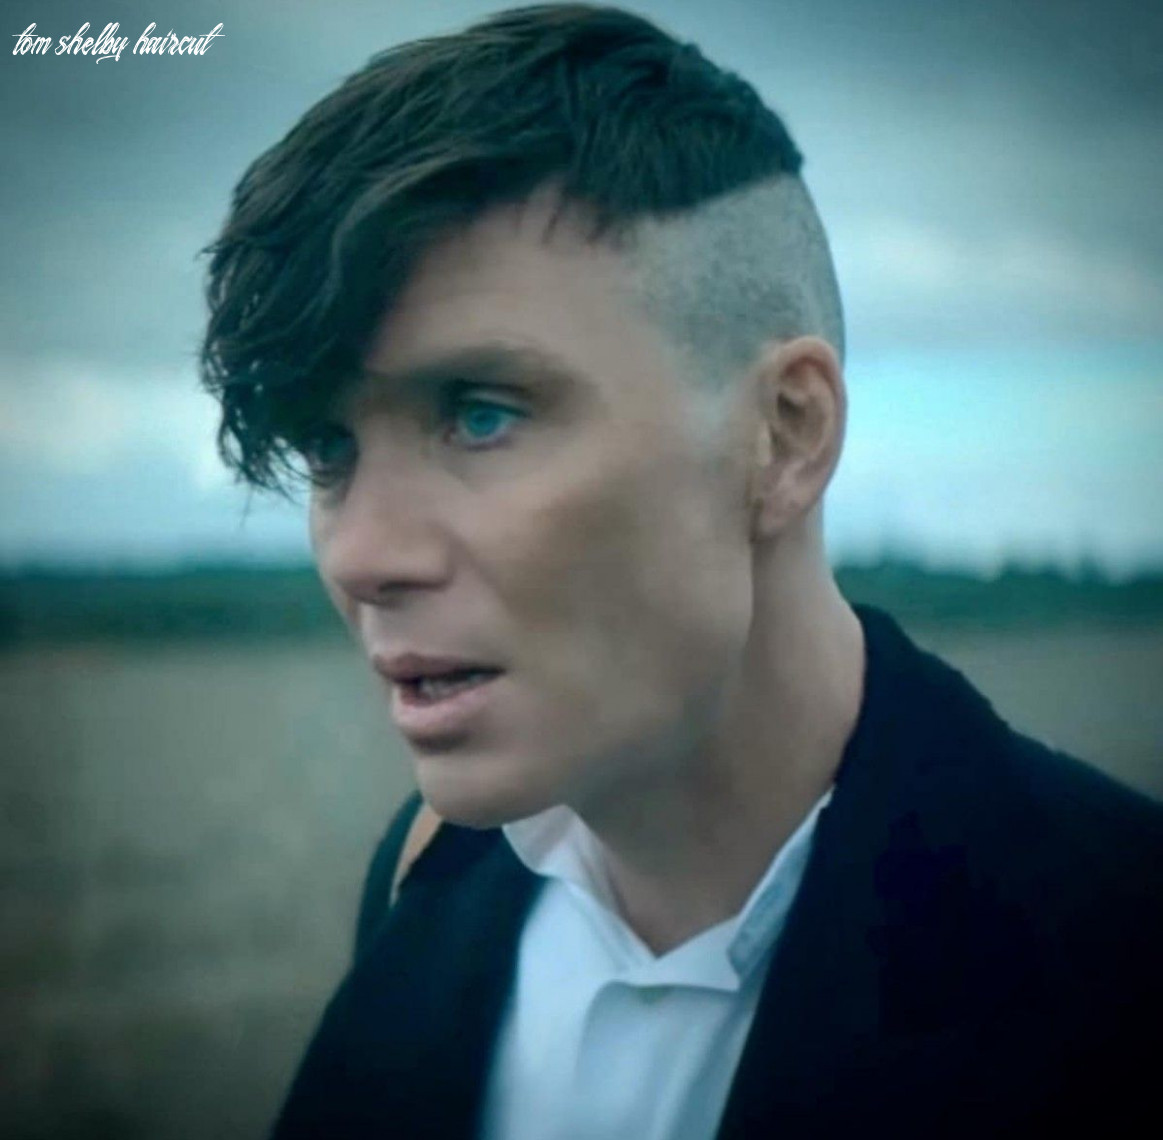 Cillian murphy as thomas shelby in peaky blinders s10 💙 (with